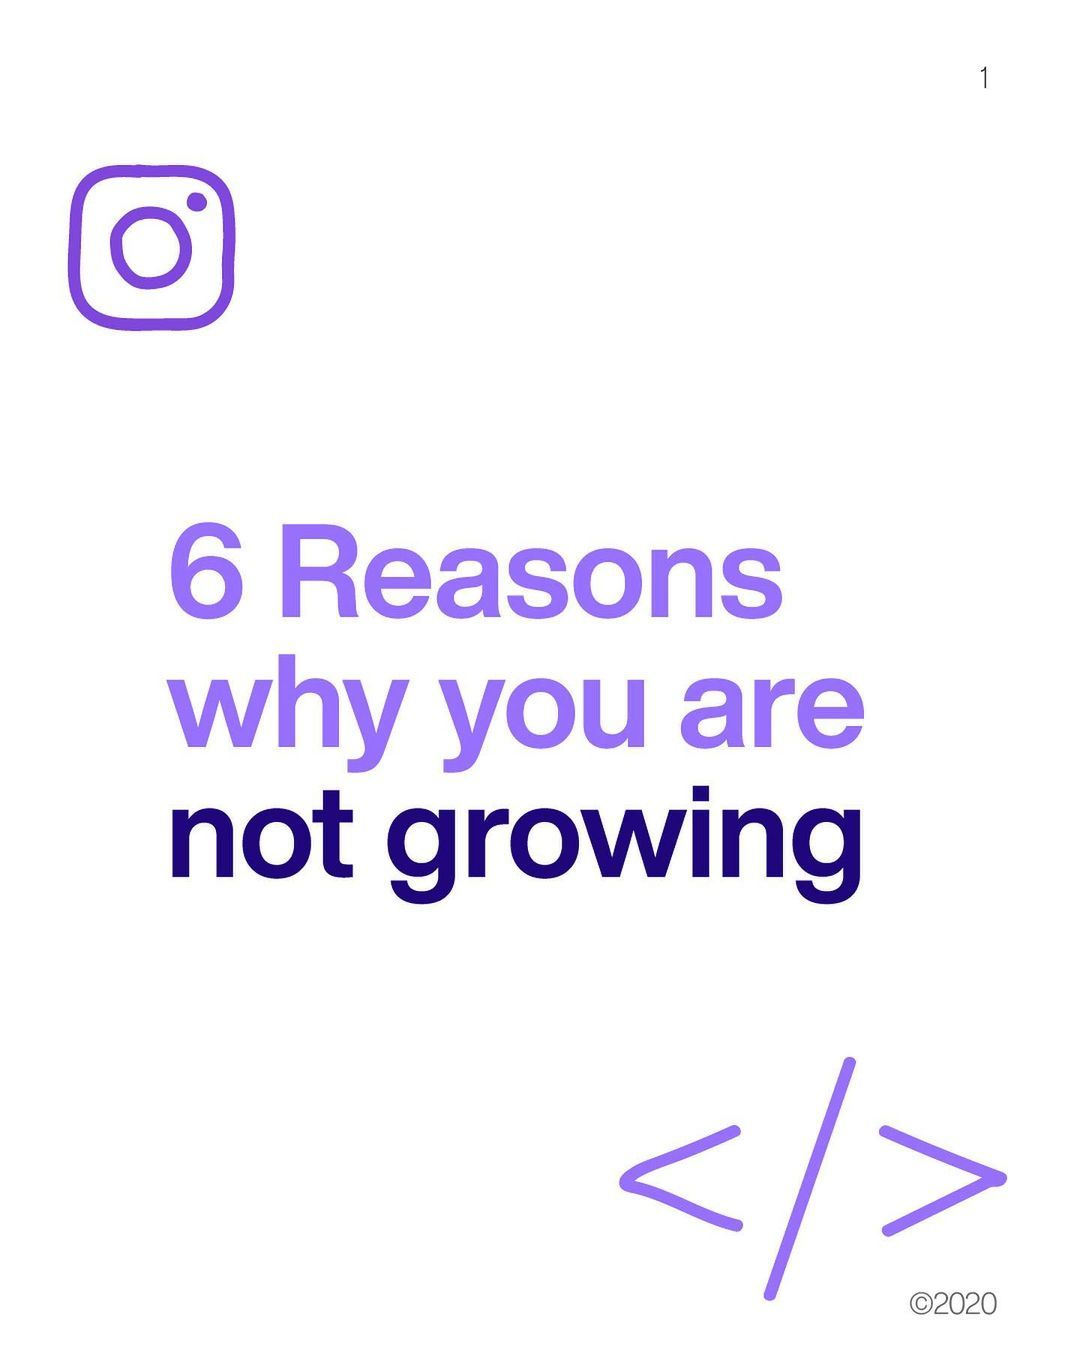 6 reasons why you are not growing